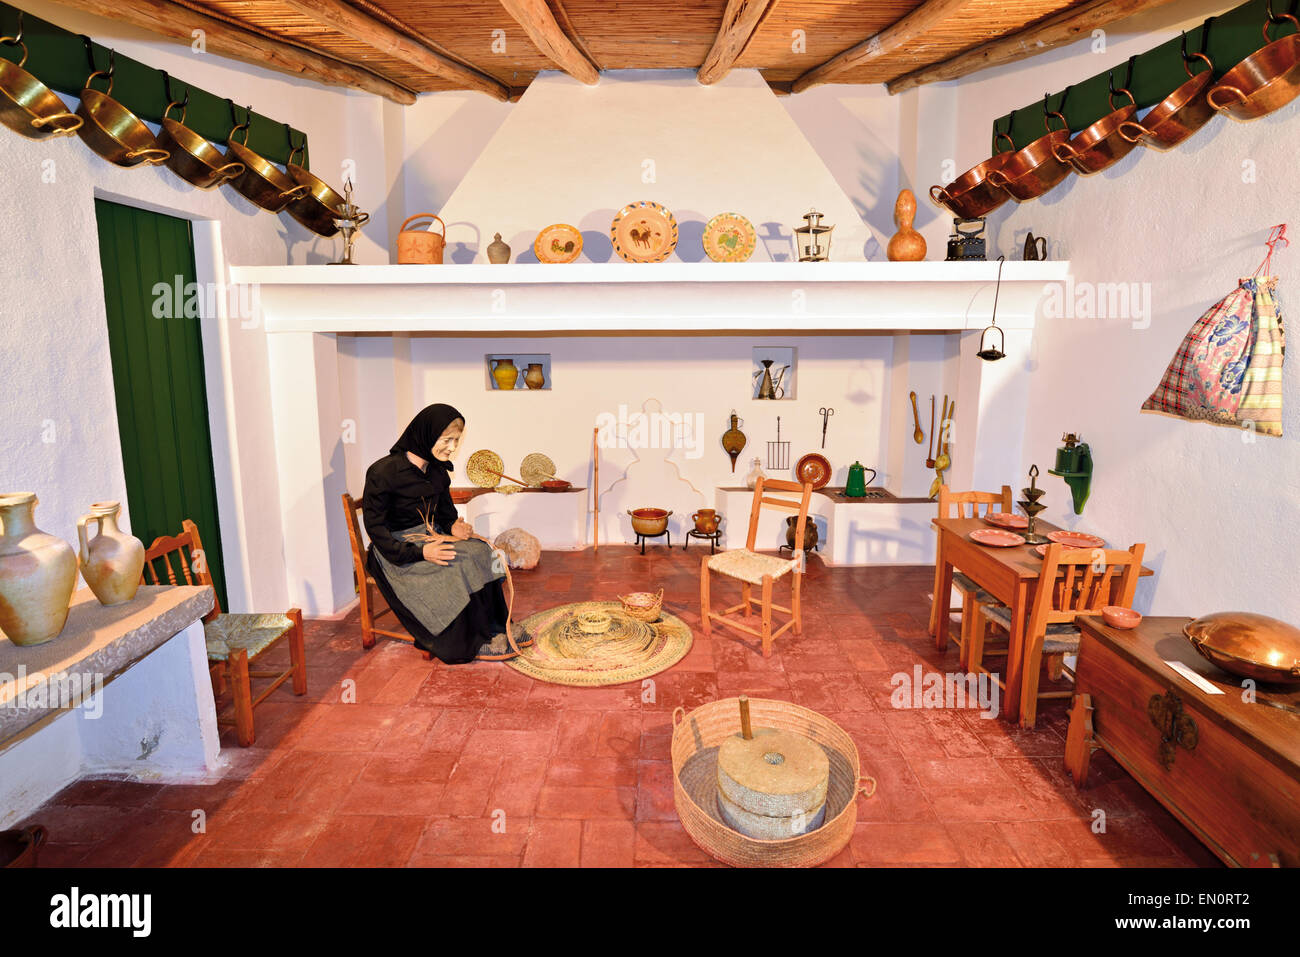 Portugal, Algarve: Example of a traditional algarvian kitchen in the Regional Ethnographic Museum of Faro - Stock Image